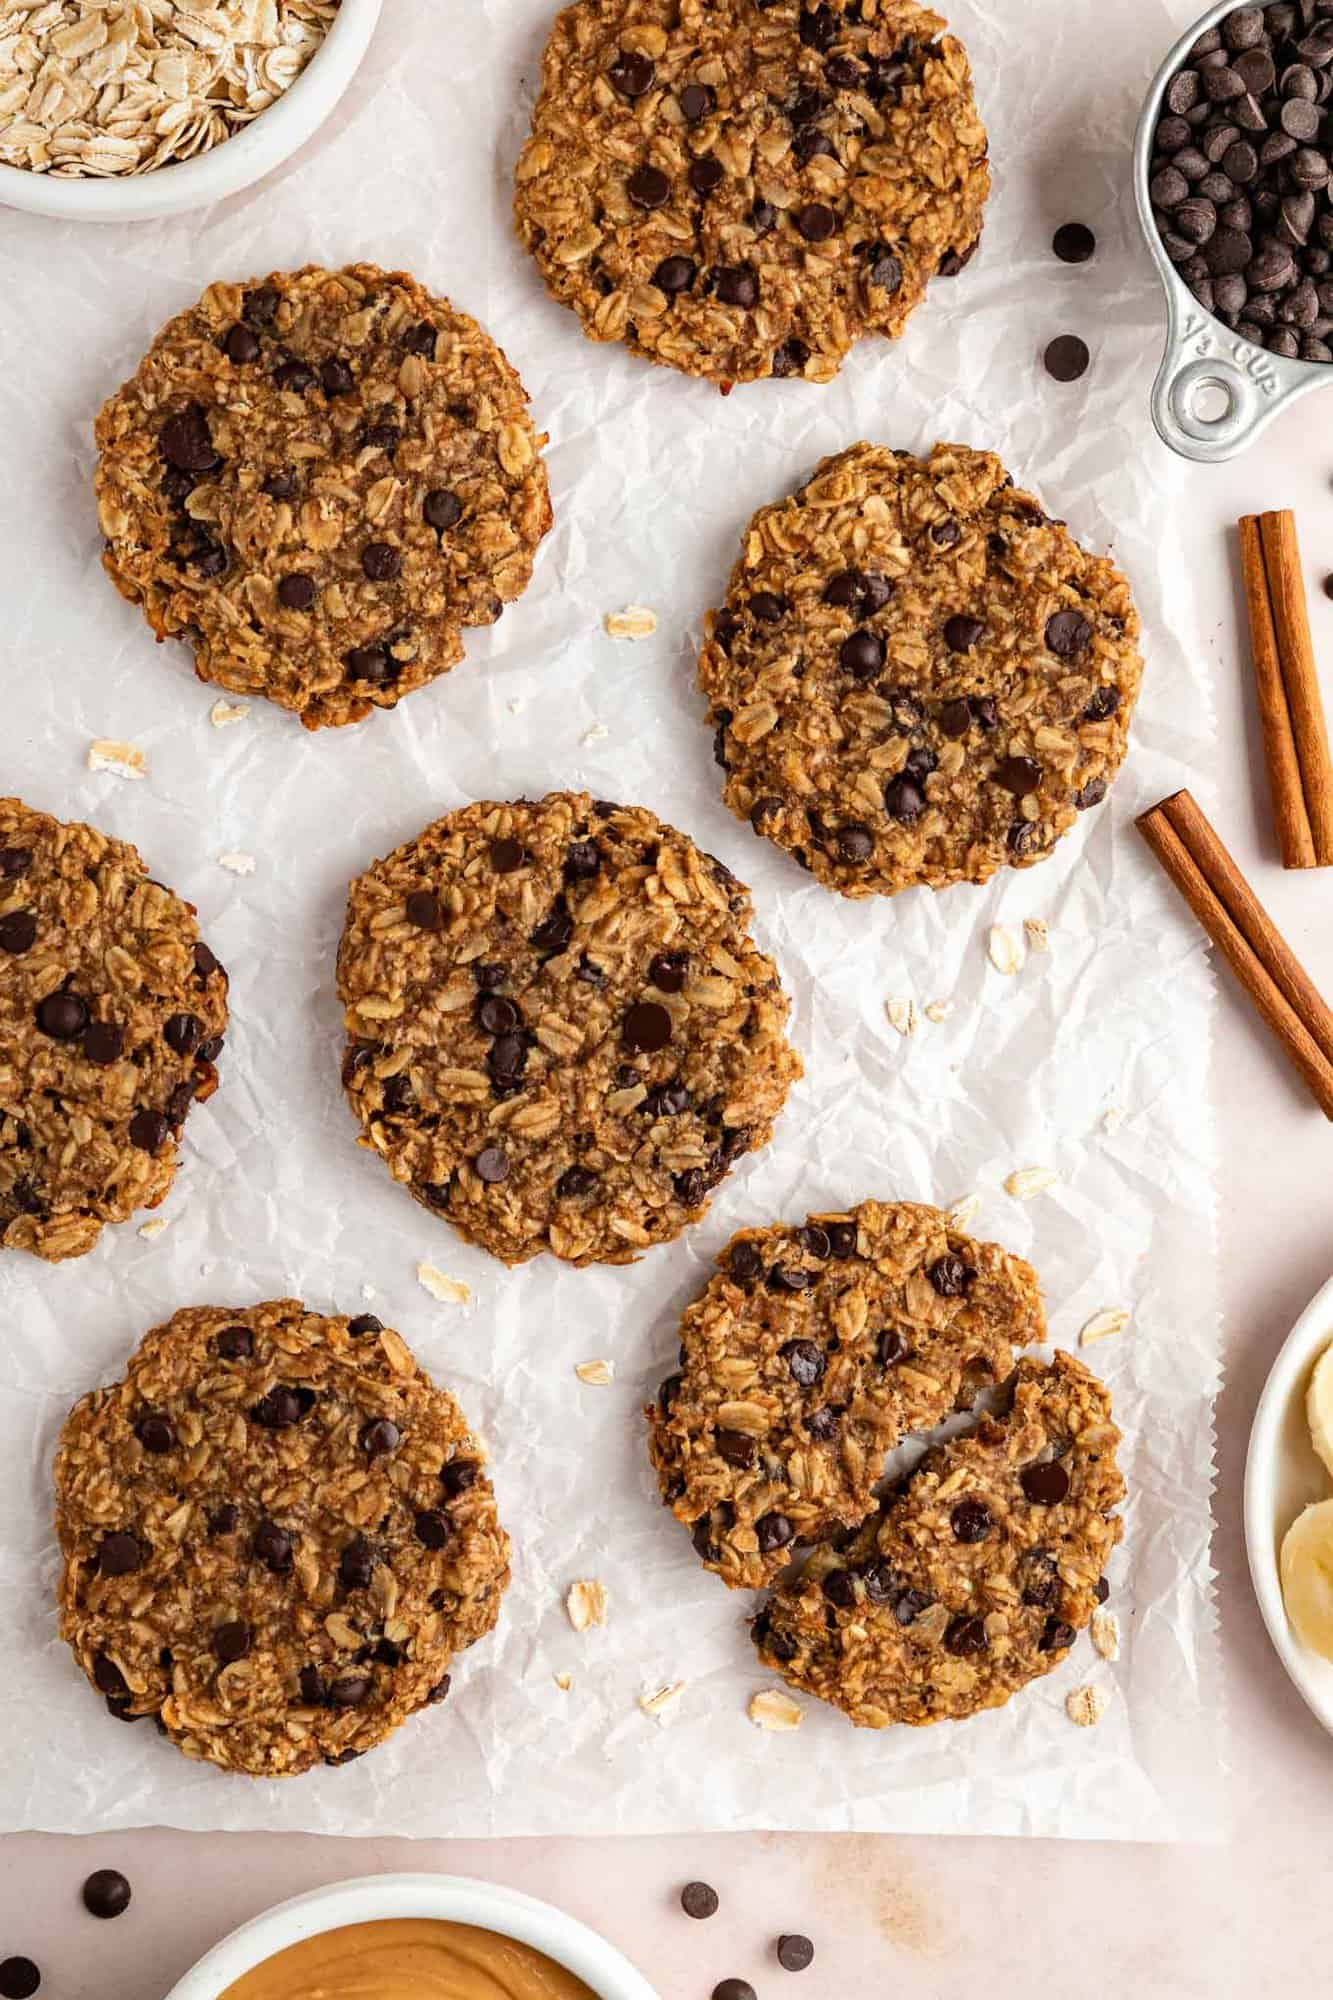 peanut butter banana oatmeal cookies with chocolate chips, sliced banana, rolled oats, and peanut butter